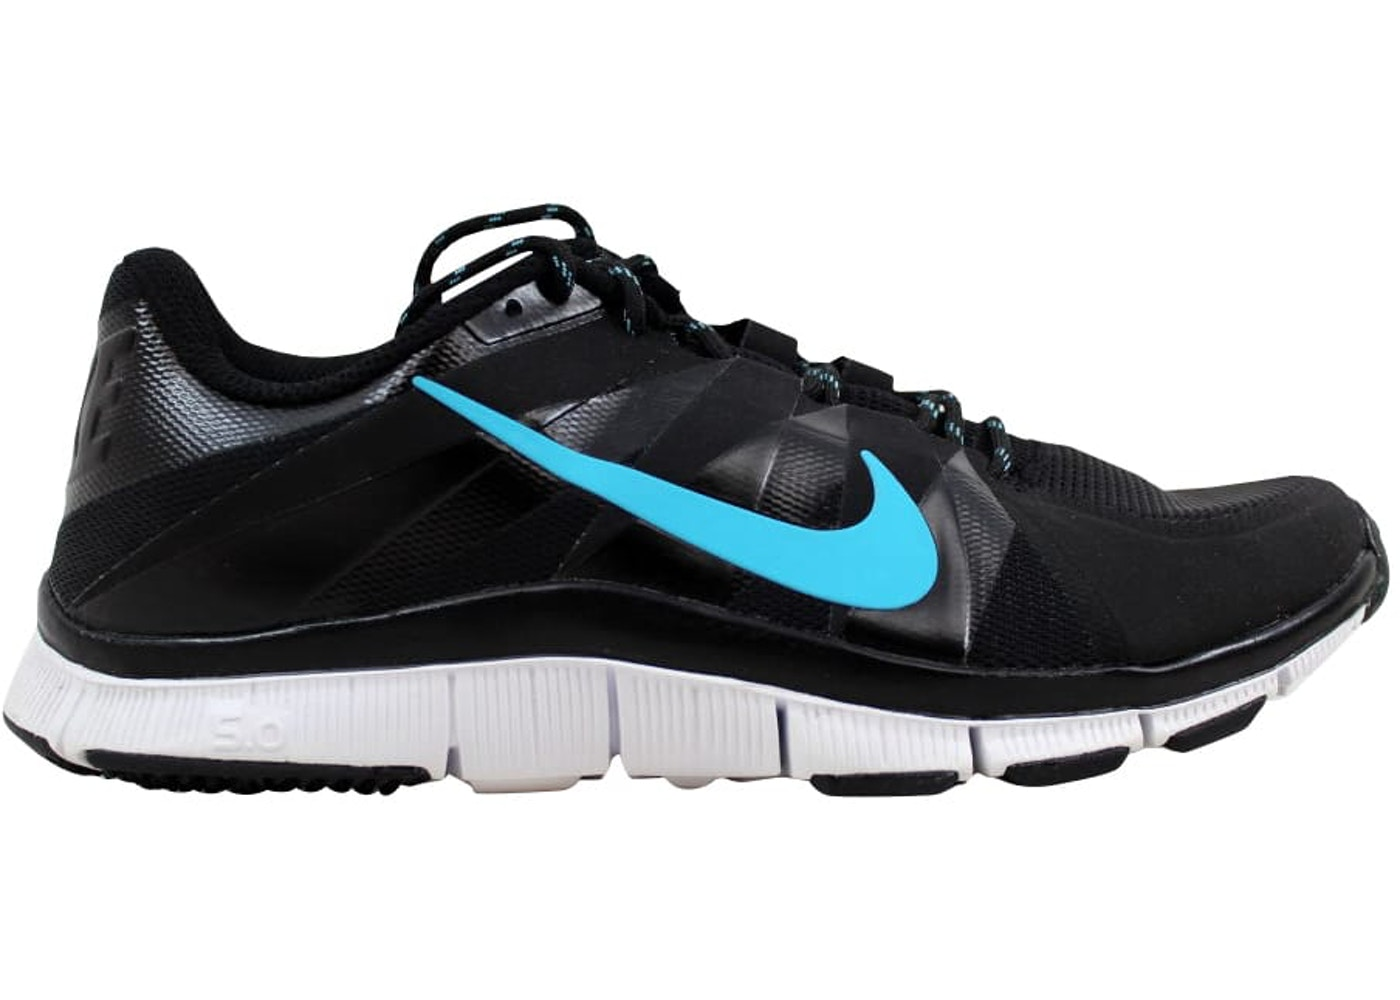 new styles 0d4d3 8a47a Sell. or Ask. Size --. View All Bids. Nike Free Trainer 5.0 Black Gamma ...